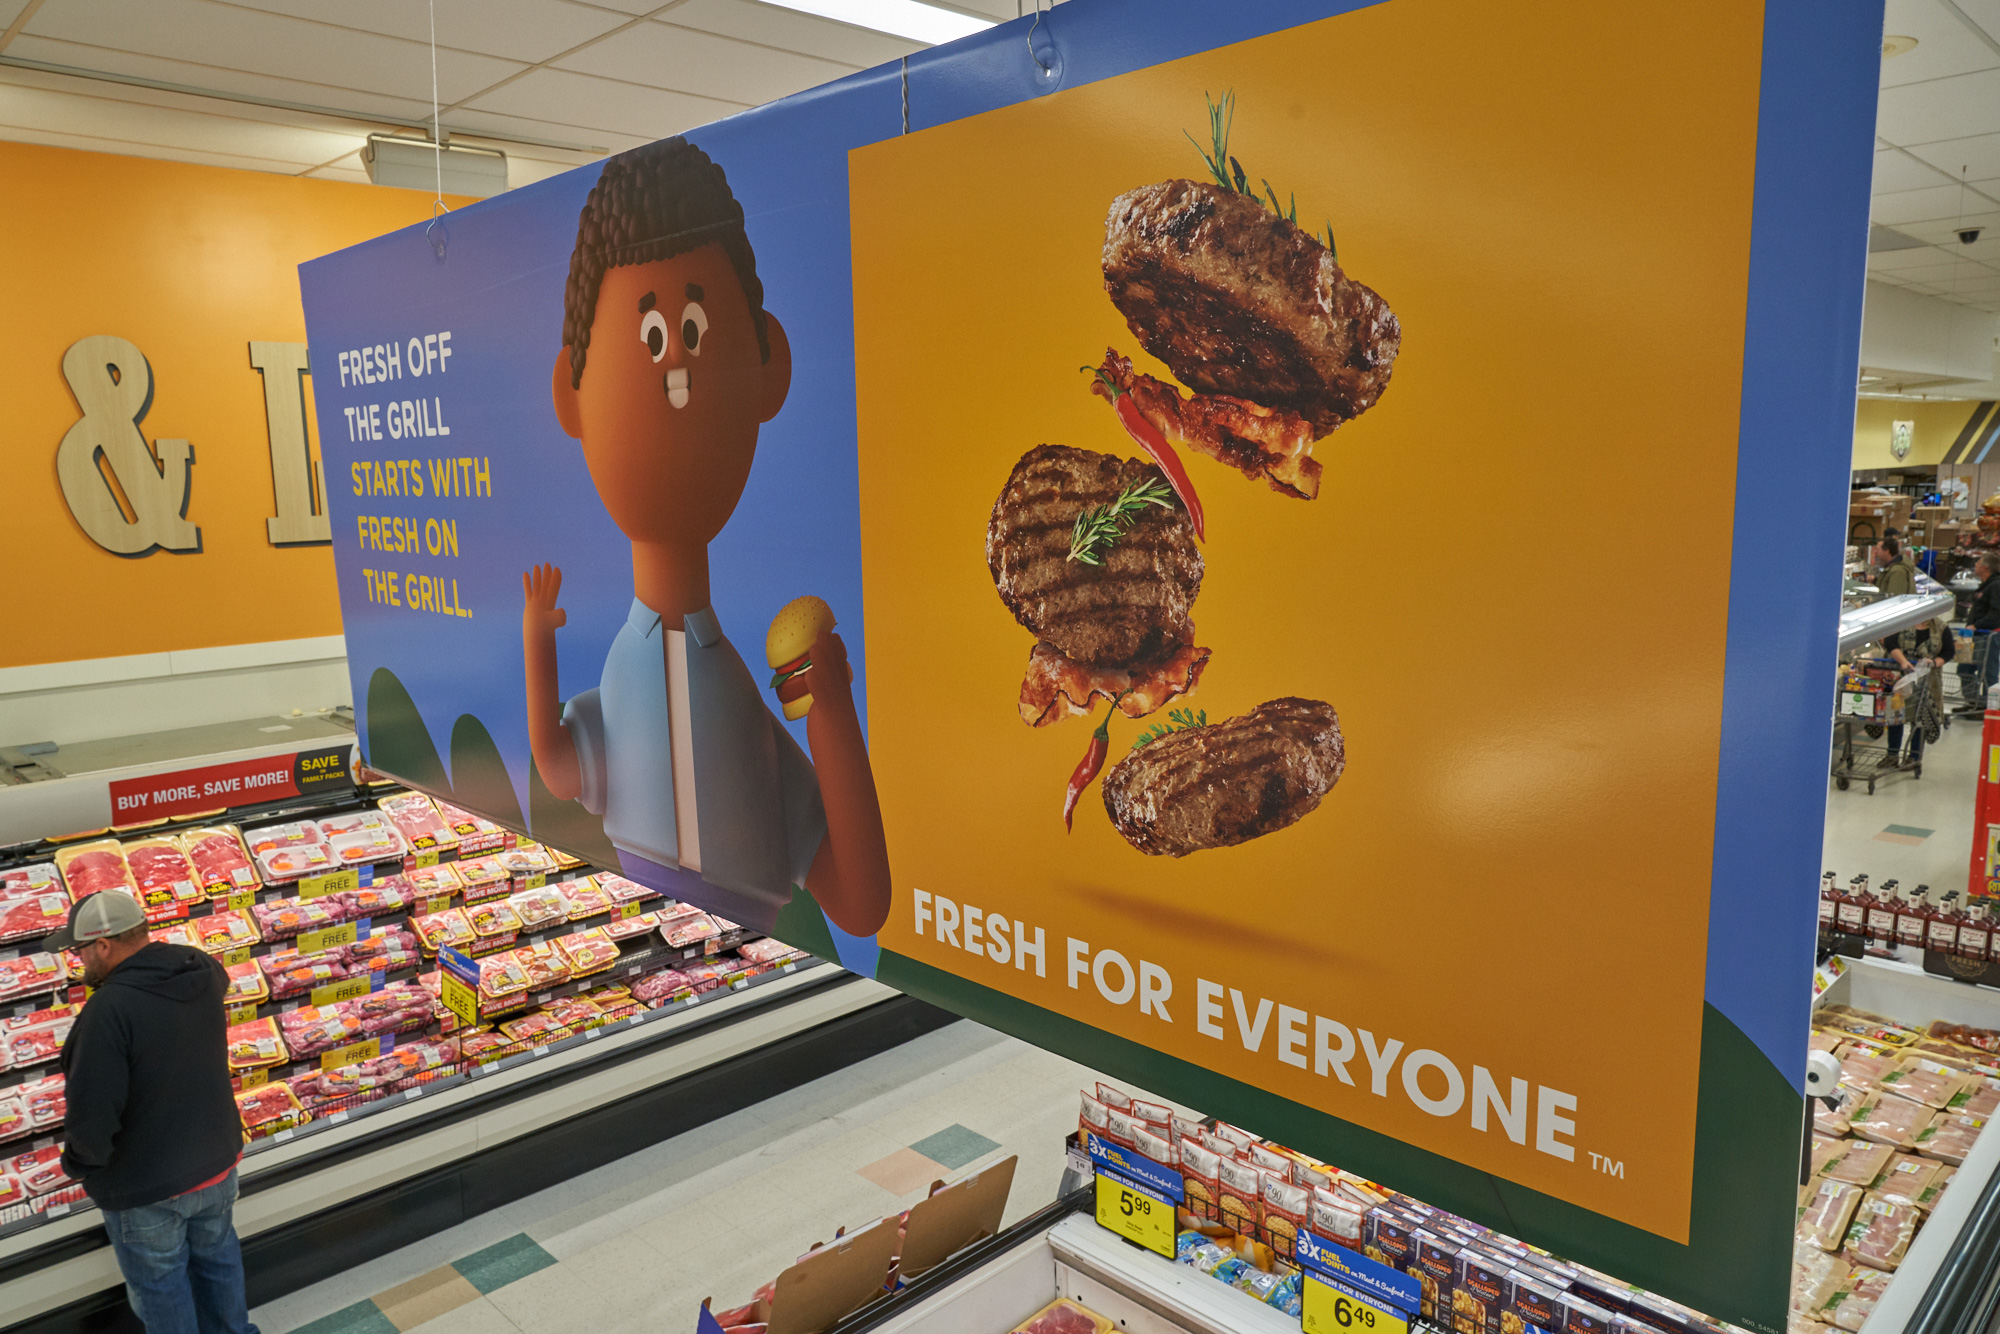 a317ce25 kroger signs interior large 04